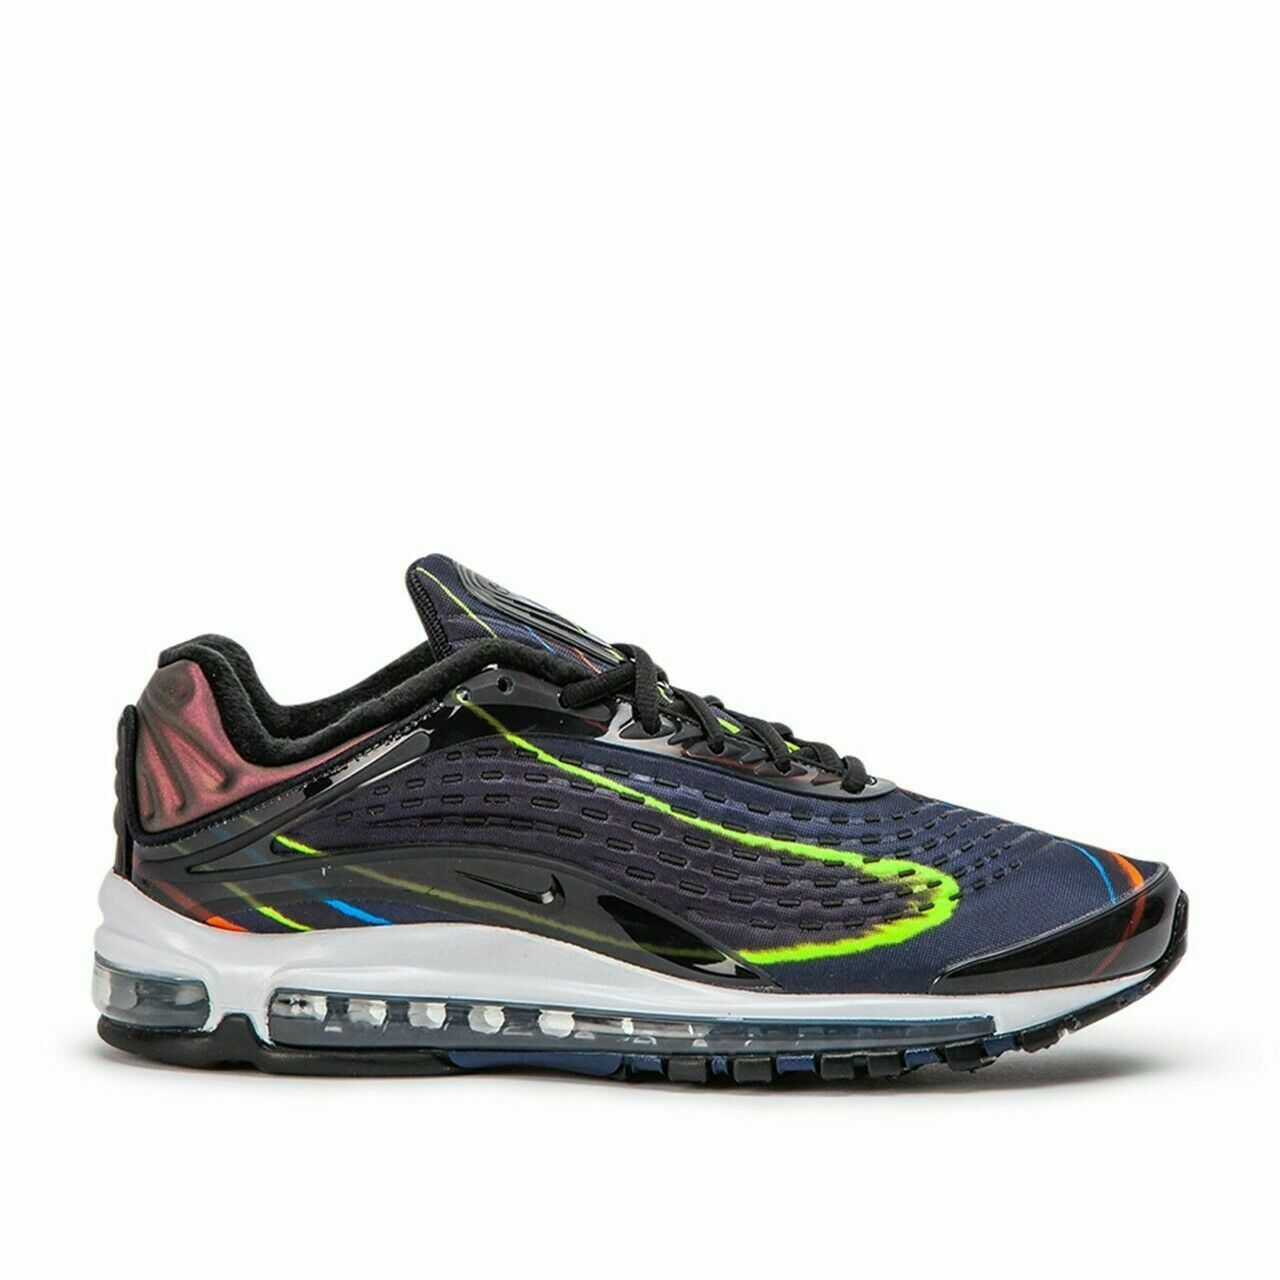 HOMBRE Nike Air Max Deluxe Zapatos Negro and 50 similar items